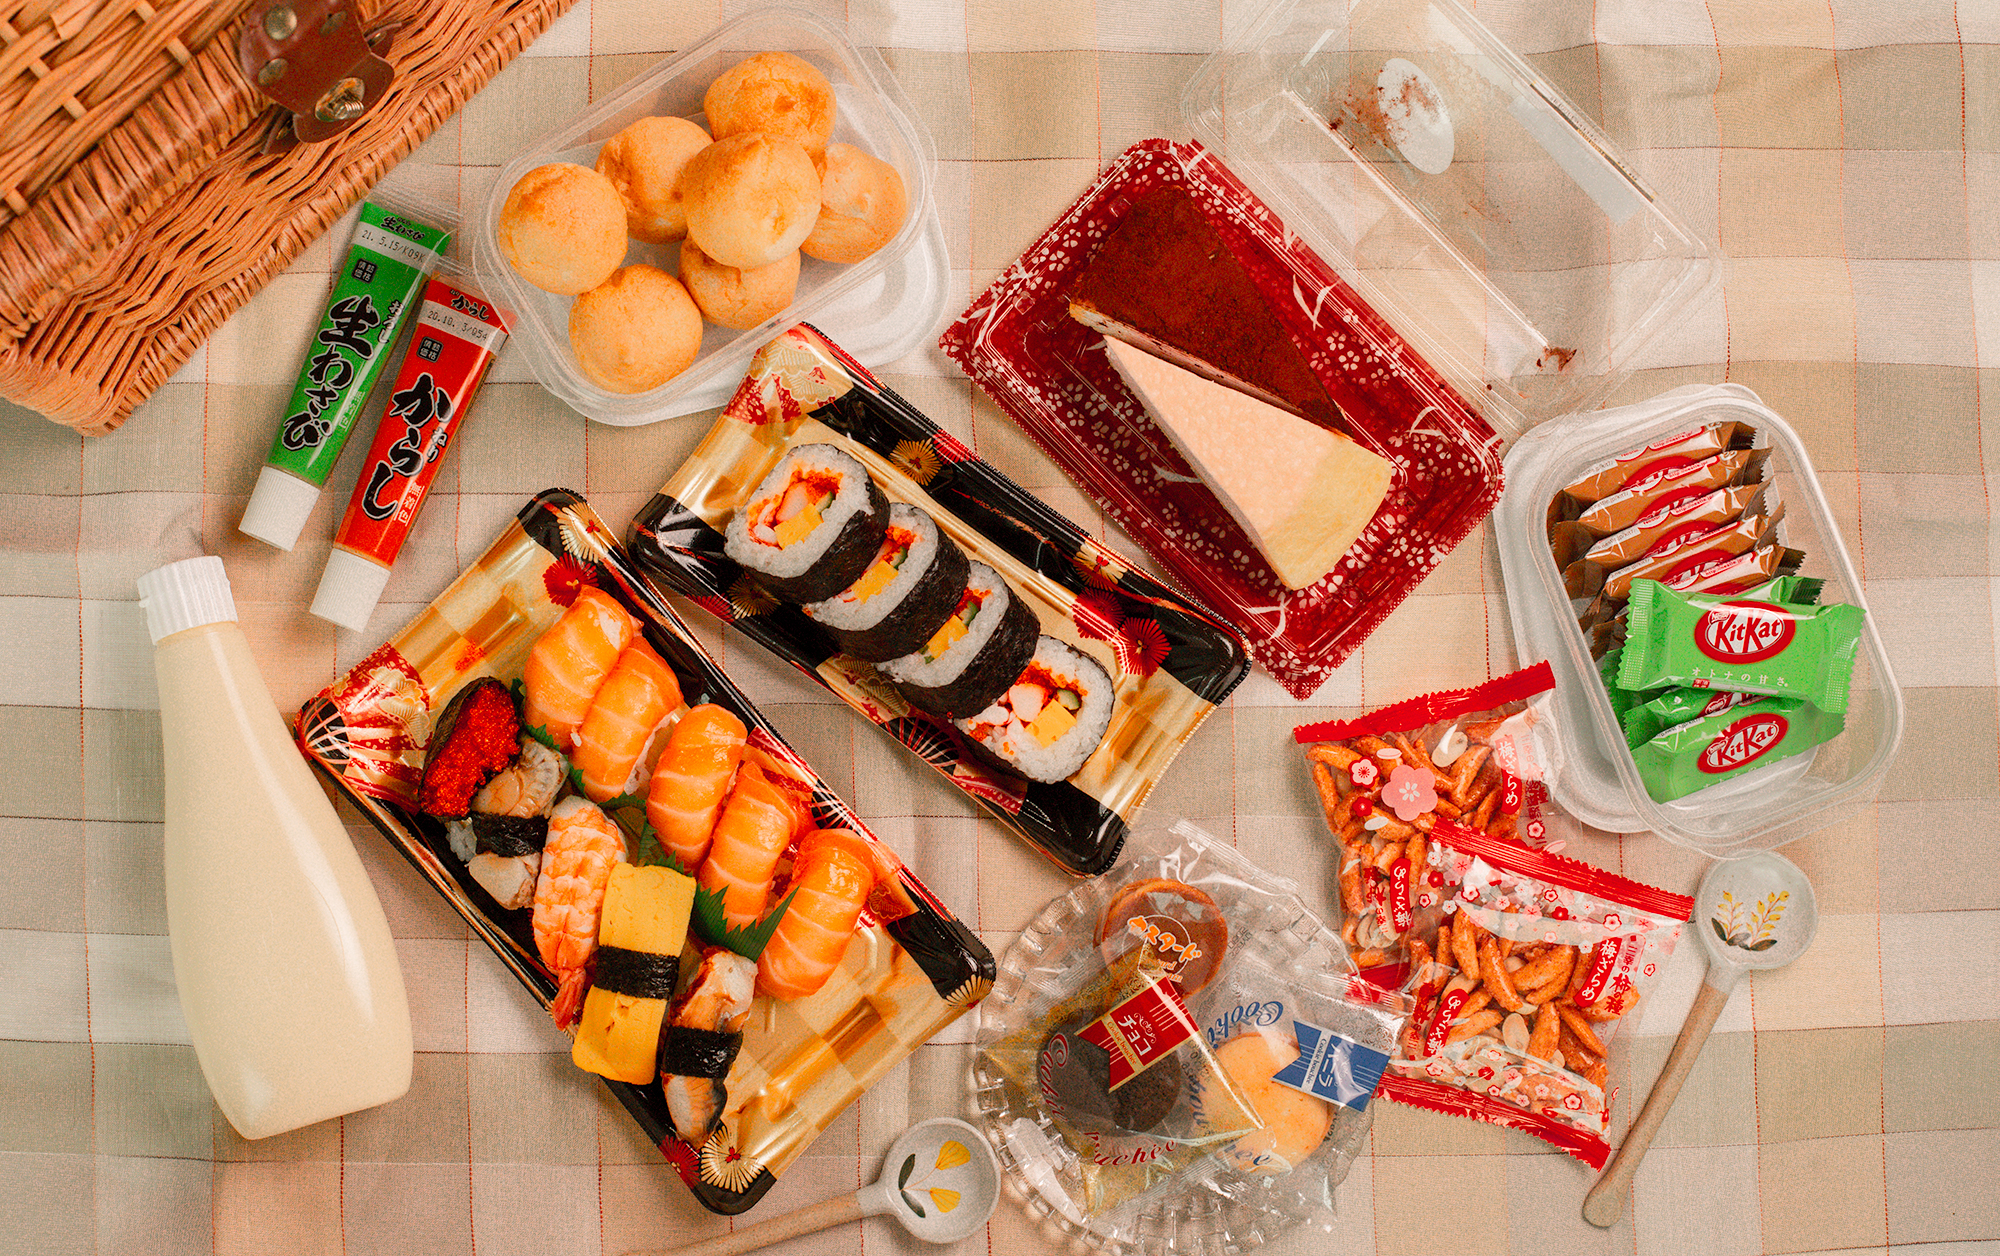 Everything You Need For An Aesthetic Japanese-Inspired Picnic Ft. DON DON DONKI